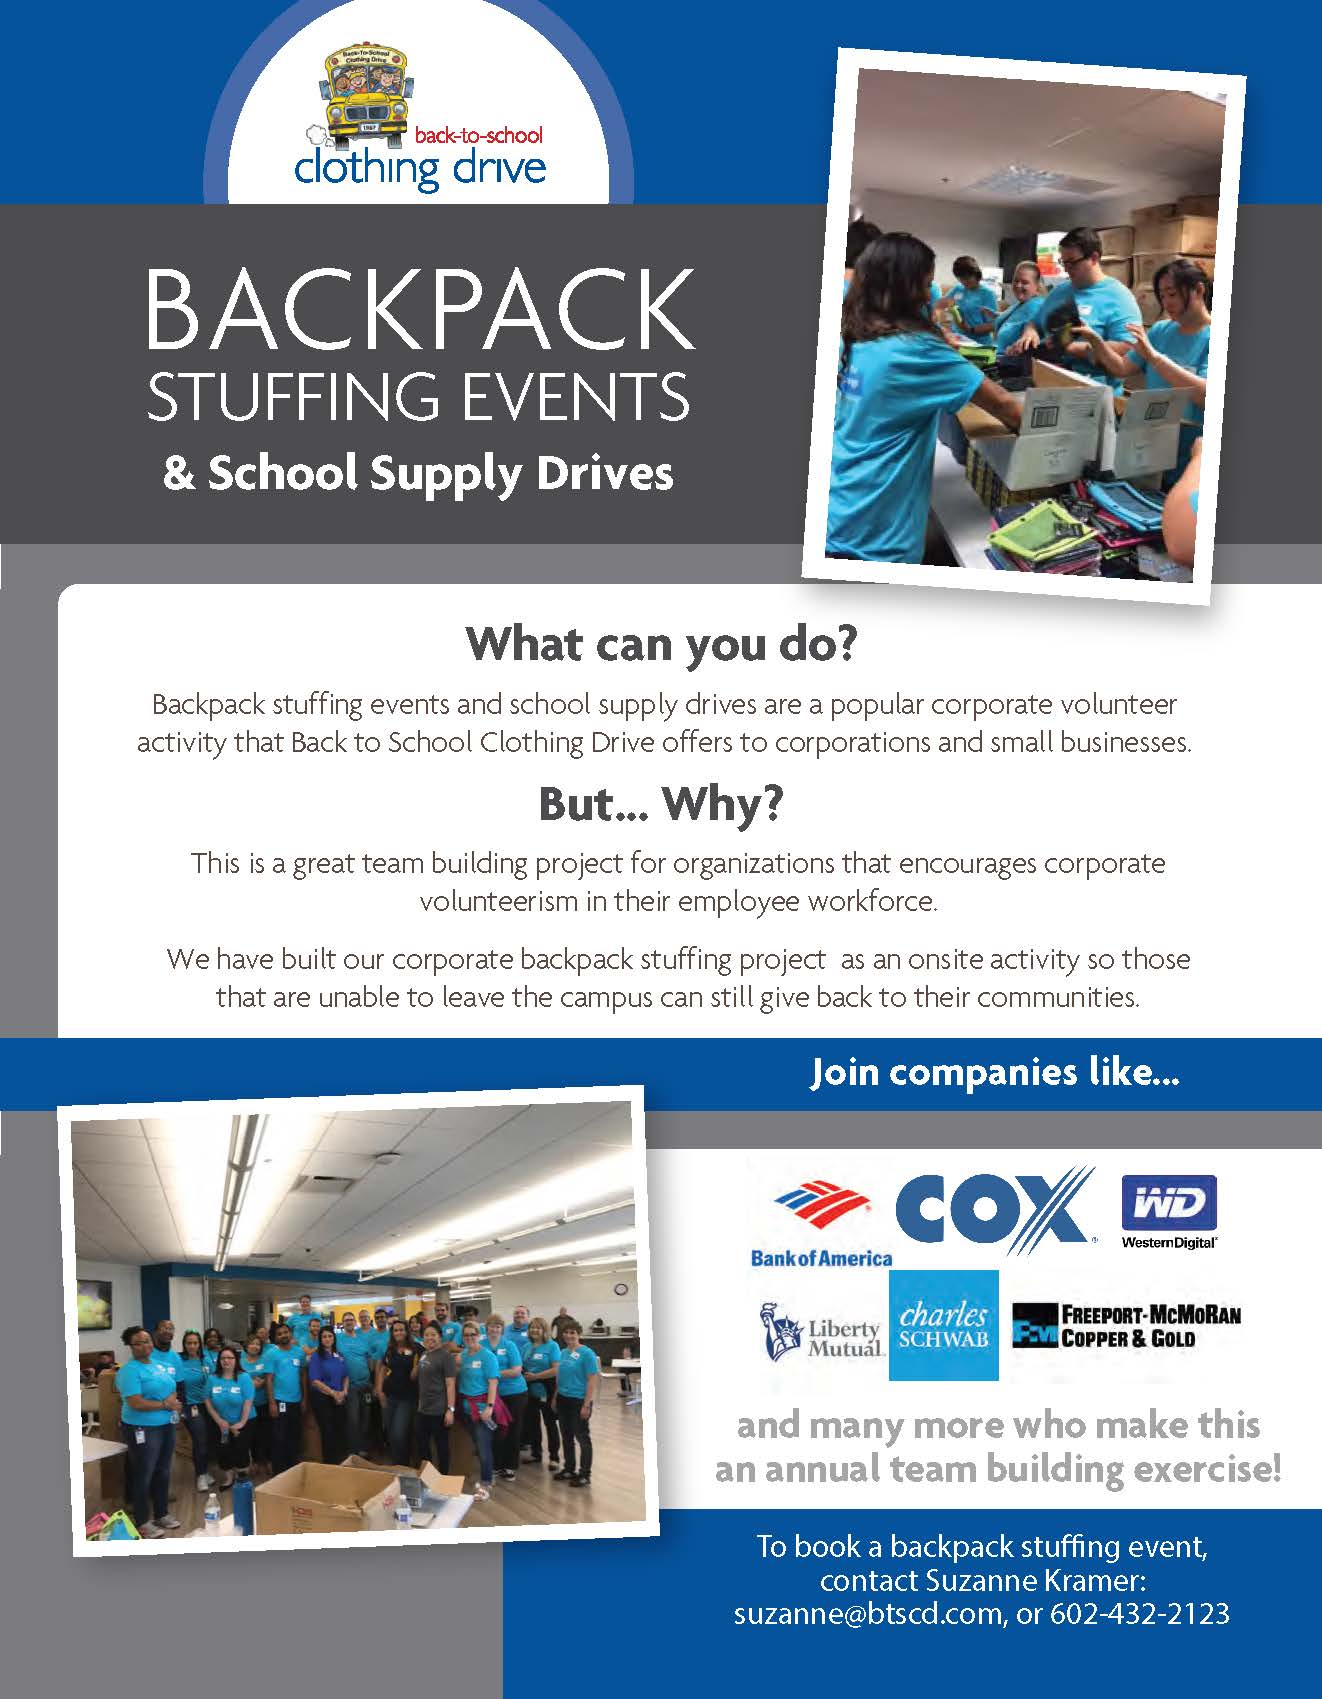 Host a Backpack Stuffing Event!